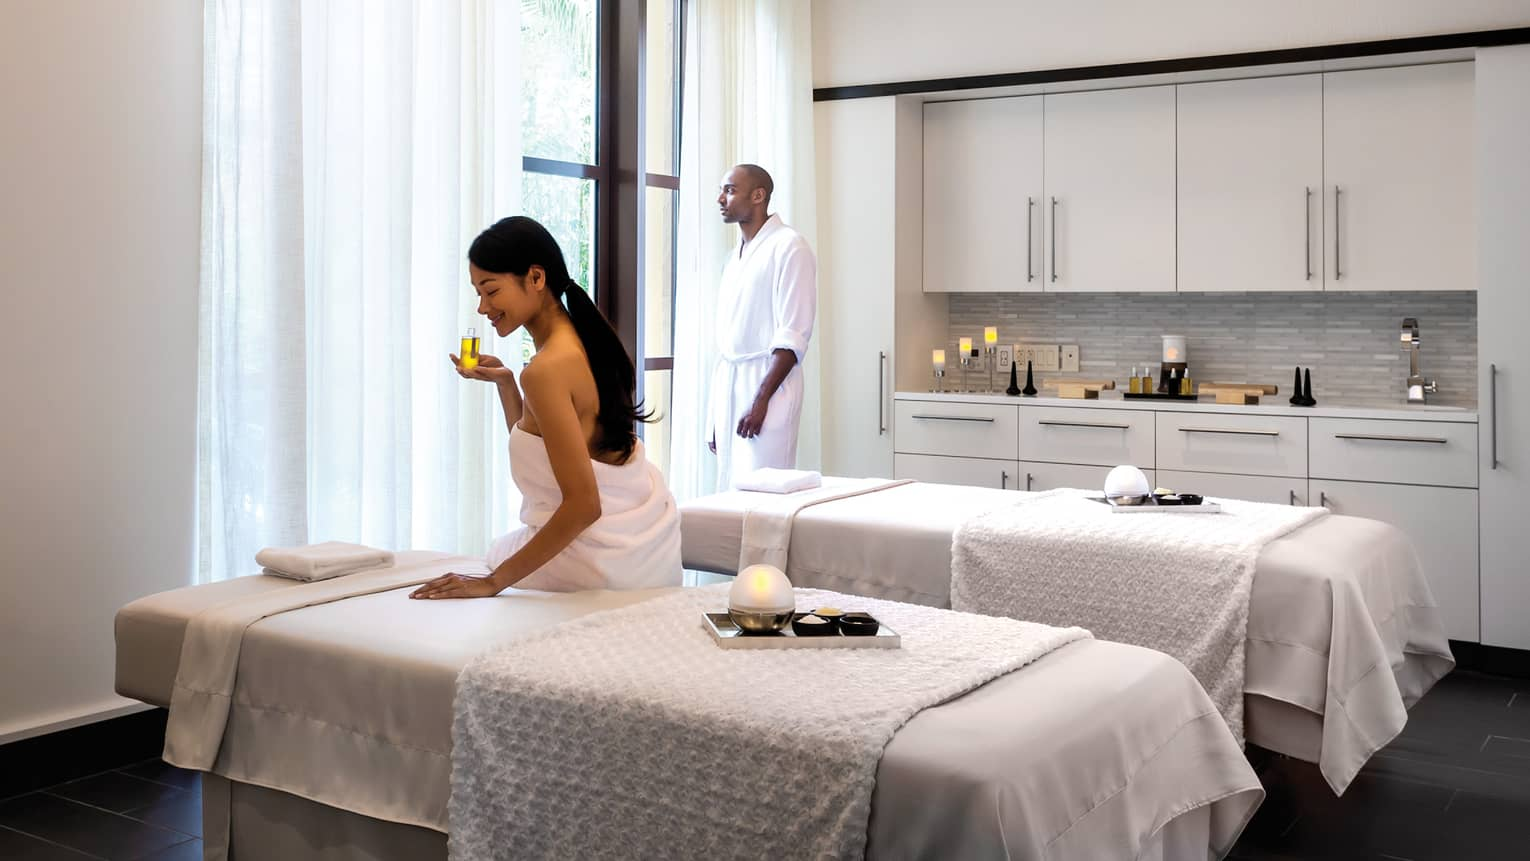 Woman wearing towel sits on edge of Couples Suite massage table, smells oil as man stands at window